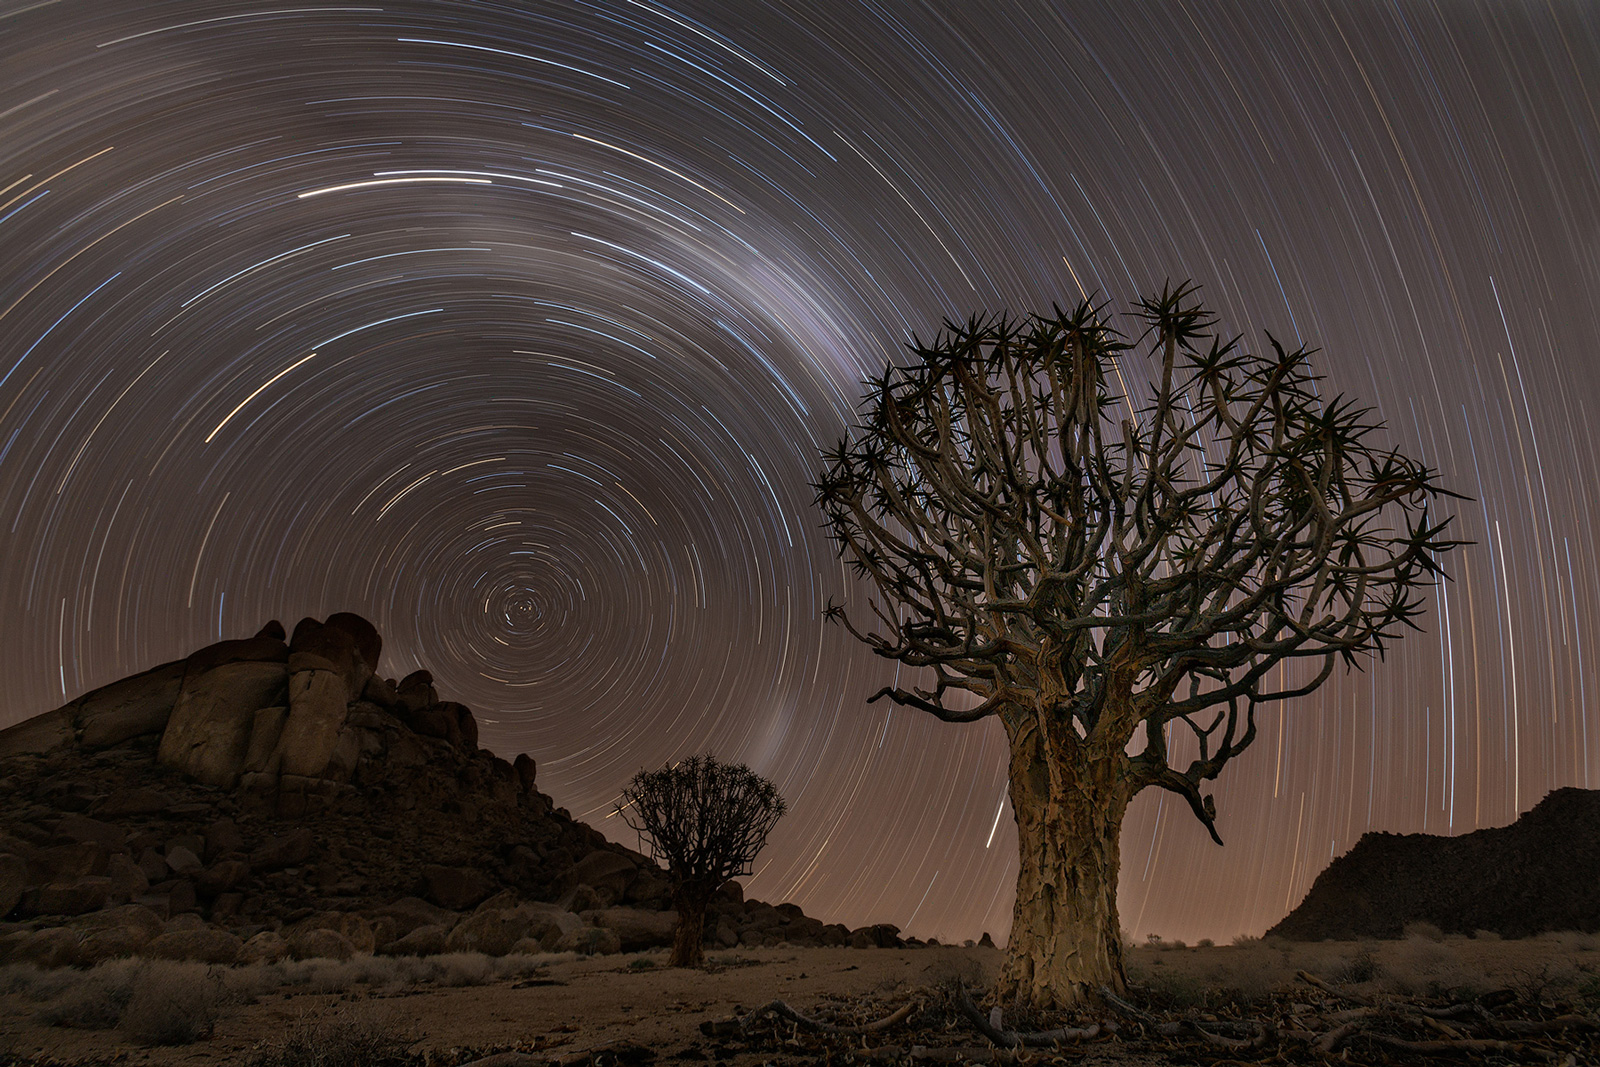 Quiver trees in the Richtersveld, South Africa ©Willem Kruger